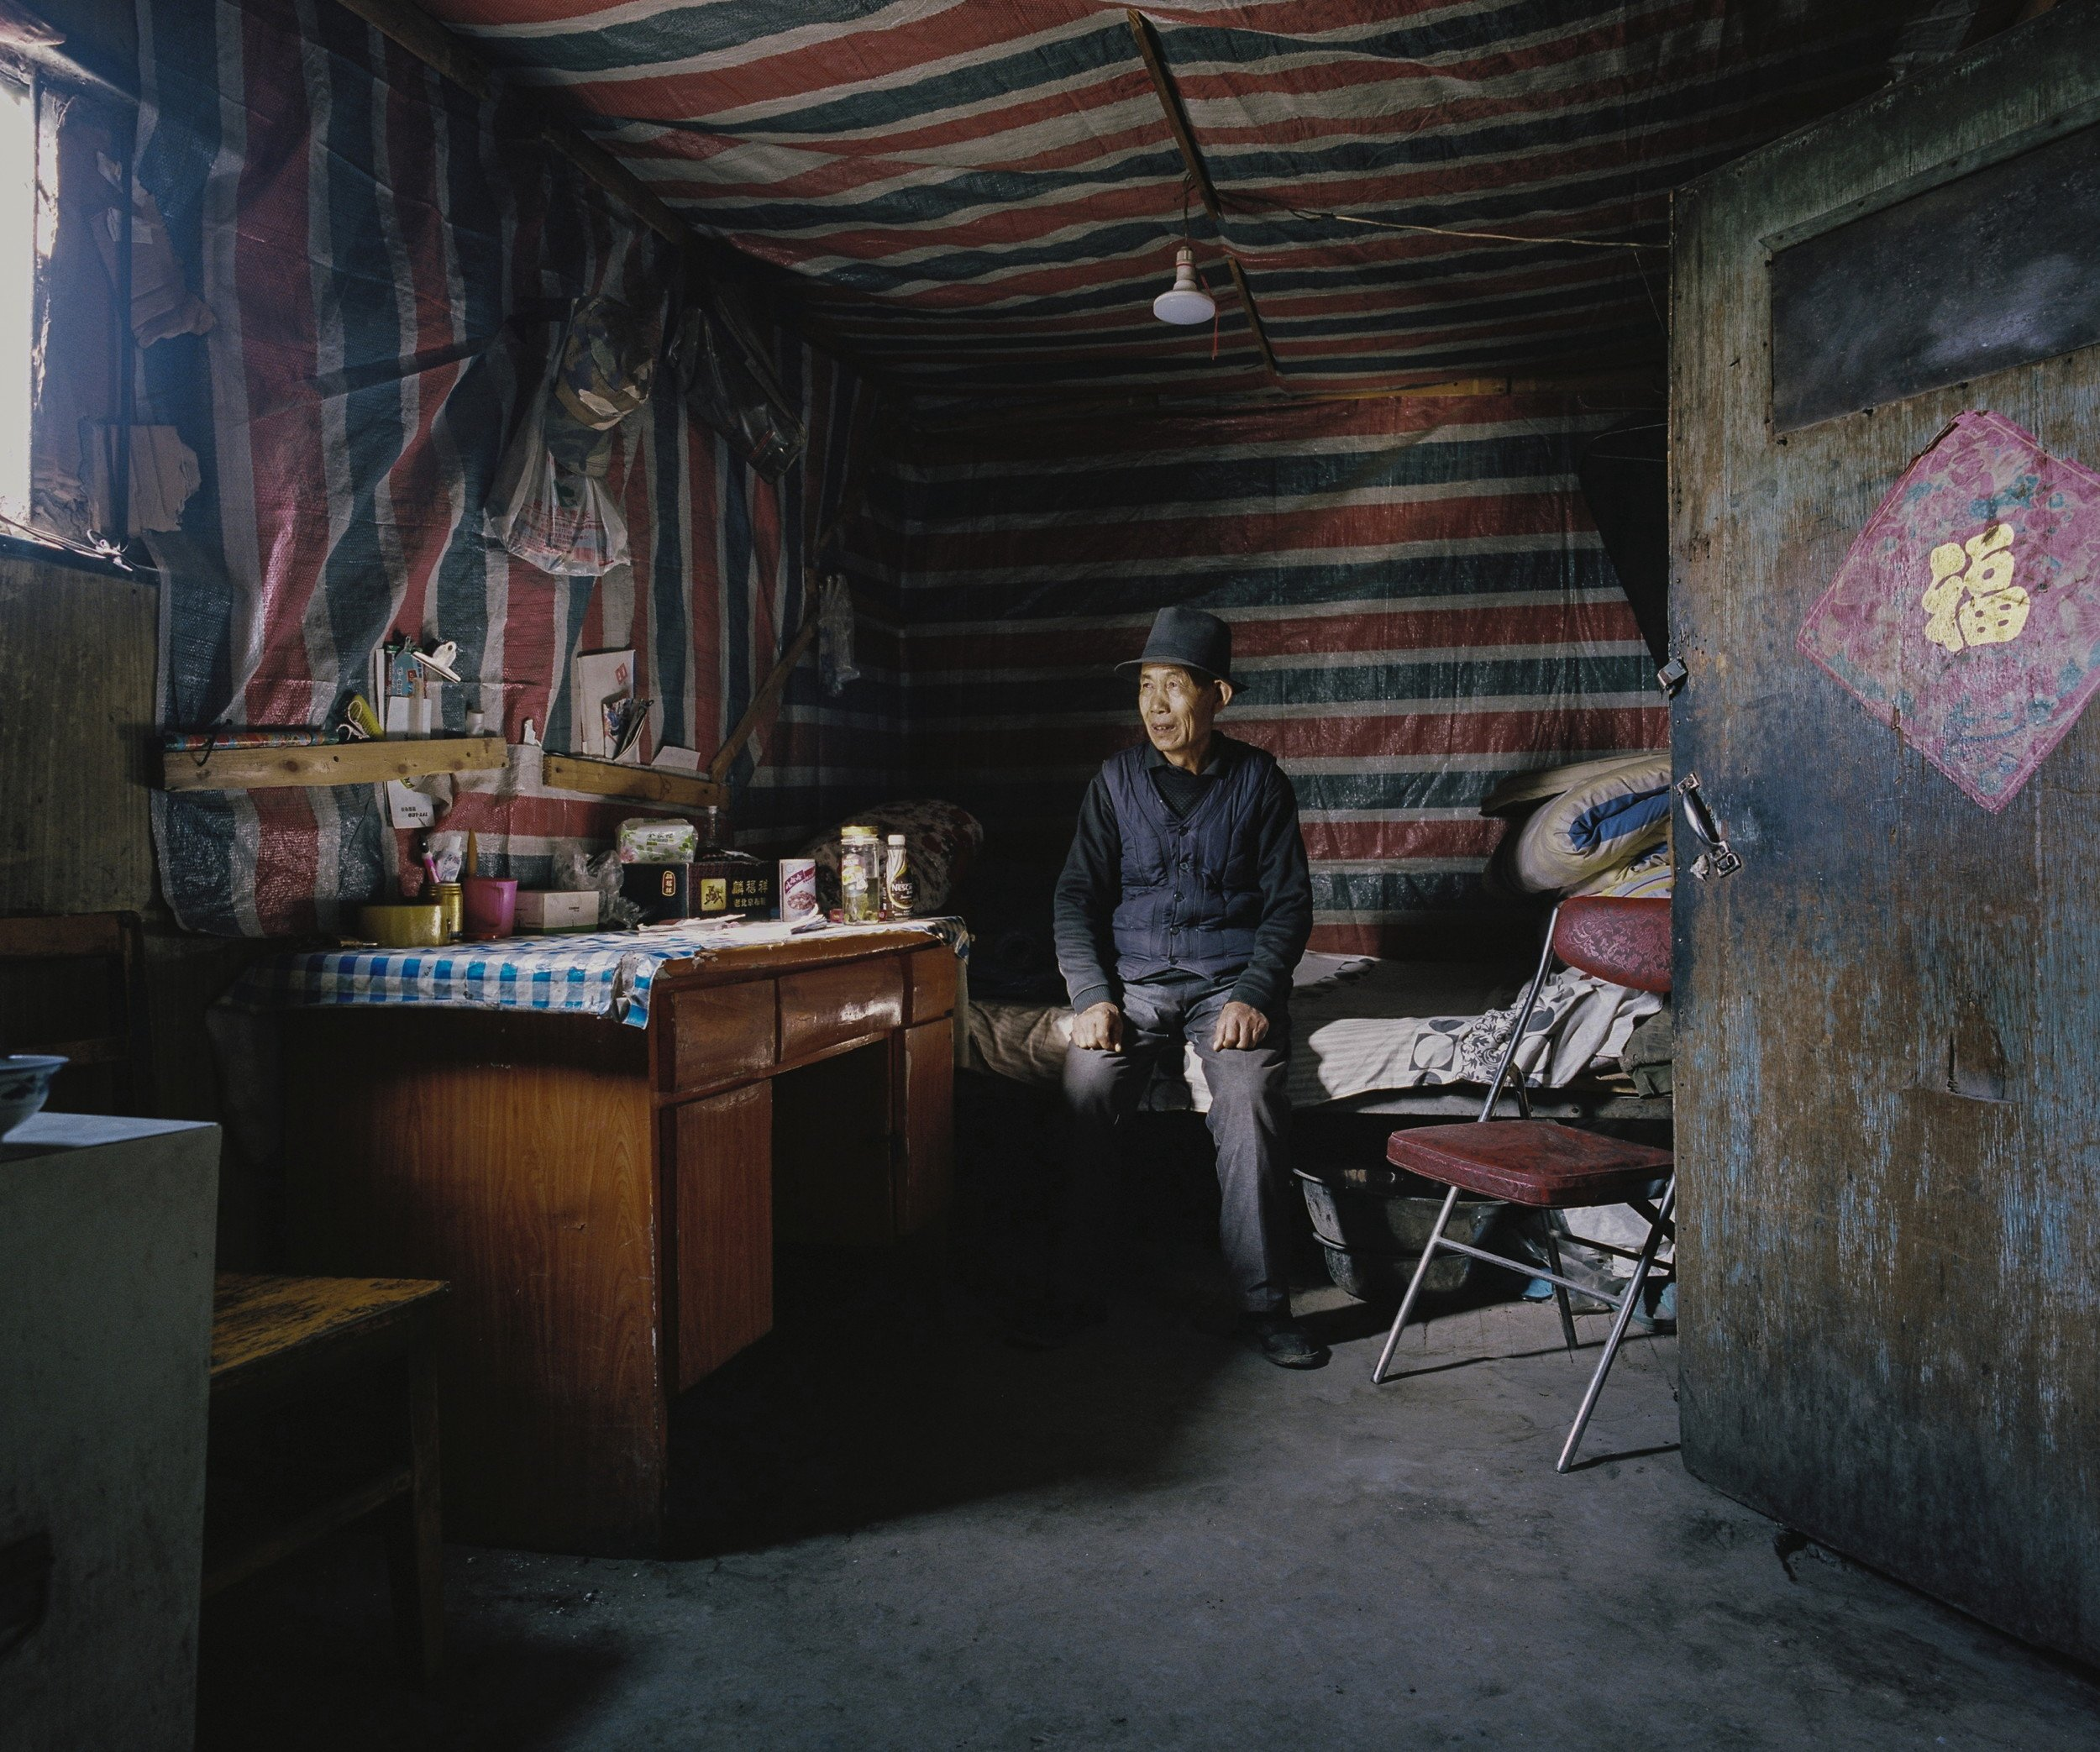 "December 2016. Xinjiang province, China. Old Han Chinese man photographed in the bedroom of his house. He is the guardian of a mine in the Taklmakan desert in the western Chinese province of Xinjiang. Xinjiang is the westernmost province in all China, located at the border of Central Asian countries, Russia and Mongolia. More than twice the size of France, it has only 22 million inhabitants, a majority of which are the indigenous Uighurs, a sunni-muslim Turkic ethnic group which has lived in the region for centuries. Tensions have nonetheless arisen in the last decade as a consequence of the en-masse migration of Han Chinese settlers and confessional persecution by the strongly secular governmental authorities.  Borrowing from romanticized notions of the American frontier, synonymous with ideals of exploration and expansion, photographer Patrick Wack captures a visual narrative of China's westernmost region—Xinjiang. Whereas the American West conjures images of cowboys and pioneers, of manifest destiny and individualistic freedom, the Chinese West has not yet been so defined. It is a place of pluralities—of haunting, expansive landscapes, of rough mountains and vivid lakes, of new construction and oil fields, of abandoned structures in decaying towns, of devout faith and calls to prayer, of silence and maligned minorities, of opportunity and uncertain futures. It is a land of shifting identity. In essence, Xinjiang is the new frontier to be conquered and pondered. Literally translating to ""new frontier"" in Chinese, Xinjiang is a land apart, and has been so for centuries. More than twice the land area of France with a population less than the city of Shanghai, the Chinese province of Xinjiang once connected China to Central Asia and Europe as the first leg of the ancient Silk Road. Yet it remains physically, culturally, and politically distinct, an otherness within modern China. Its infinite sense of space; its flowing Arabic scripts and mosque-filled cityscapes; its designation as an autonomous region; and simmering beneath, its uneasy relationship with the encroaching, imposing, surveilling East. For China's ethnic Han majority, Xinjiang is once again the new frontier, to be awakened for Beijing's new Silk Road—China's own manifest destiny—with the promise of prosperity in its plentiful oil fields. For Patrick Wack, Out West is as a much a story of the region as it is his own, as much a documentation of a contemporary and historical place as it is an emotional journey of what it means to strive, and for what. There exists an inherent fascination in the region—as both key and foil to the new China—and a siren's call to its vast limitlessness that instinctively incites introspection and desire. Showcasing a romanticism of the frontier, Out West presents Xinjiang via the lens of its present day, in photography that speaks of the surrealistic tranquility—and disquiet—of the unknown. Out West offers an experience of Xinjiang that highlights its estrangement from contemporary perceptions of the new China, accentuating undercurrents of tension and the mystique it has cultivated—whether in their minds or ours. At its core, Out West is a question of perspective: What is the West but the East to another?"